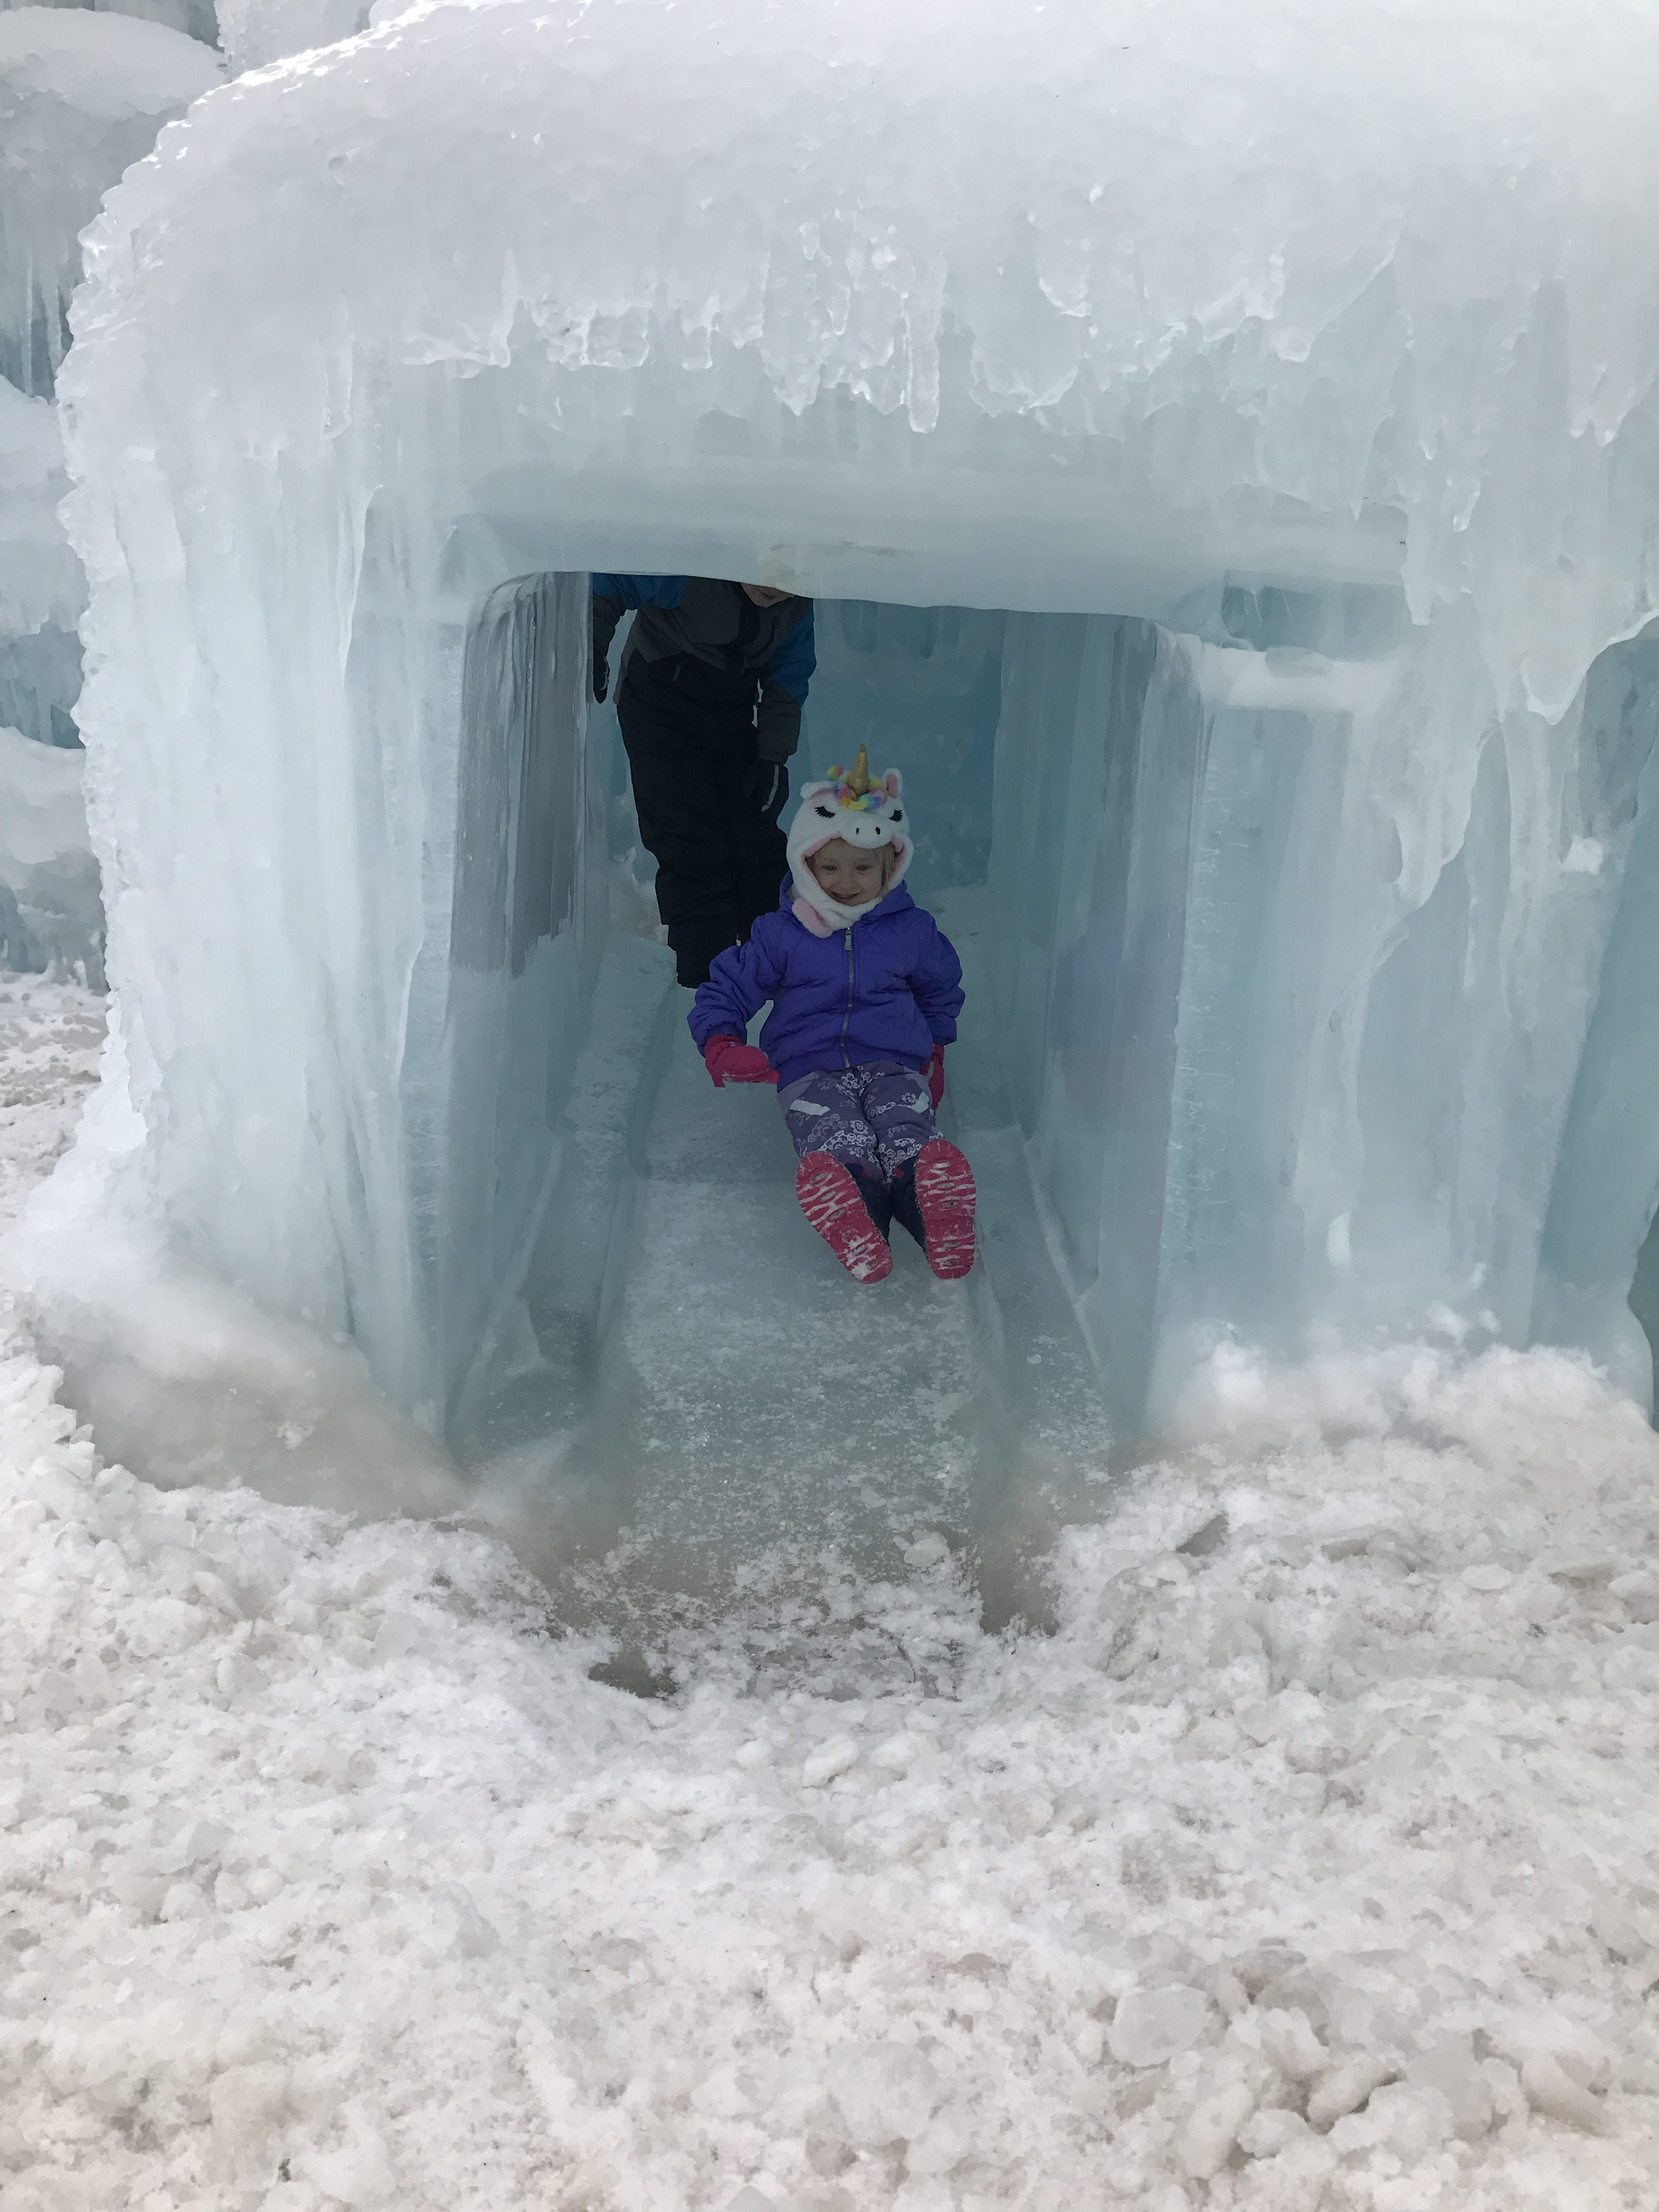 Visit The Ice Castles In Dillon Colorado, ice castles, tips for visiting the ice castles in colorado, winter activities in colorado, ice castles dillon, ice castles denver, ice castles, where do I see the ice castles